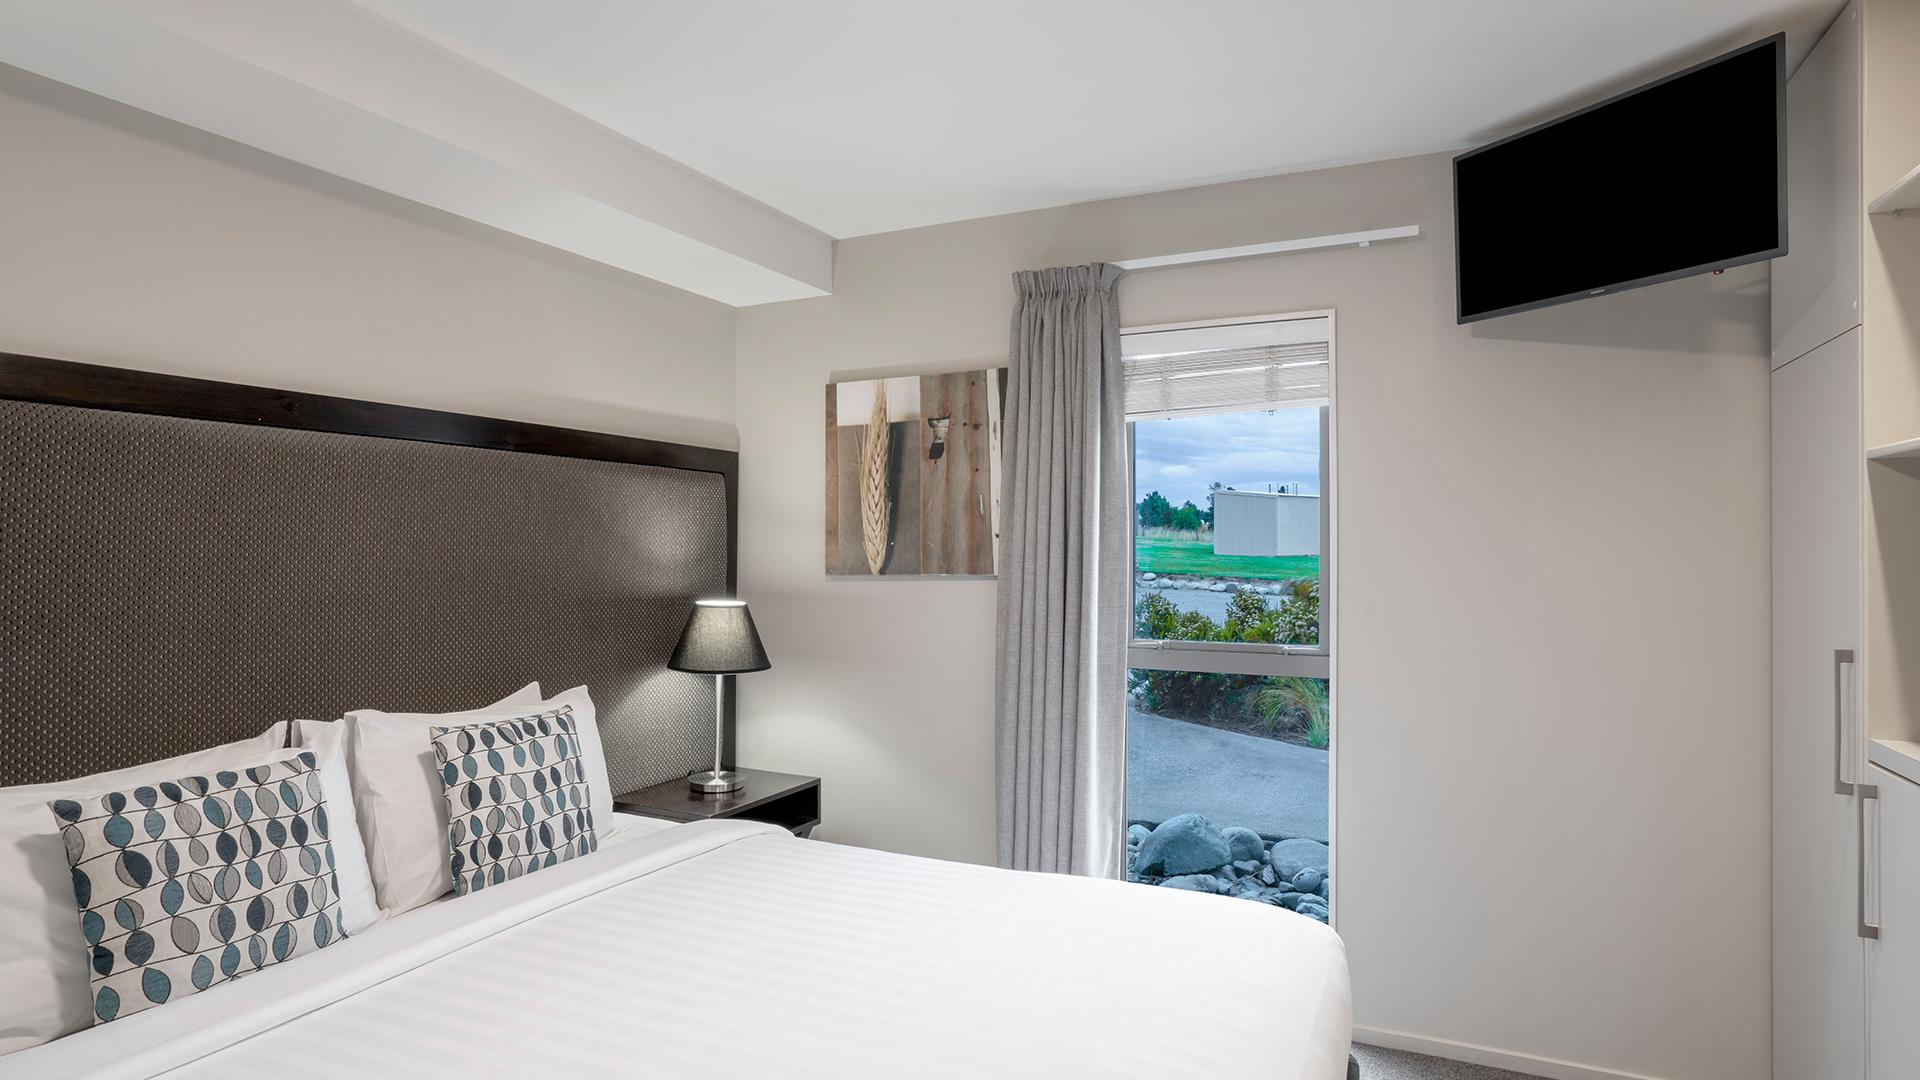 Hotel Room image 1 at Peppers Bluewater Resort Lake Tekapo by null, Canterbury, New Zealand